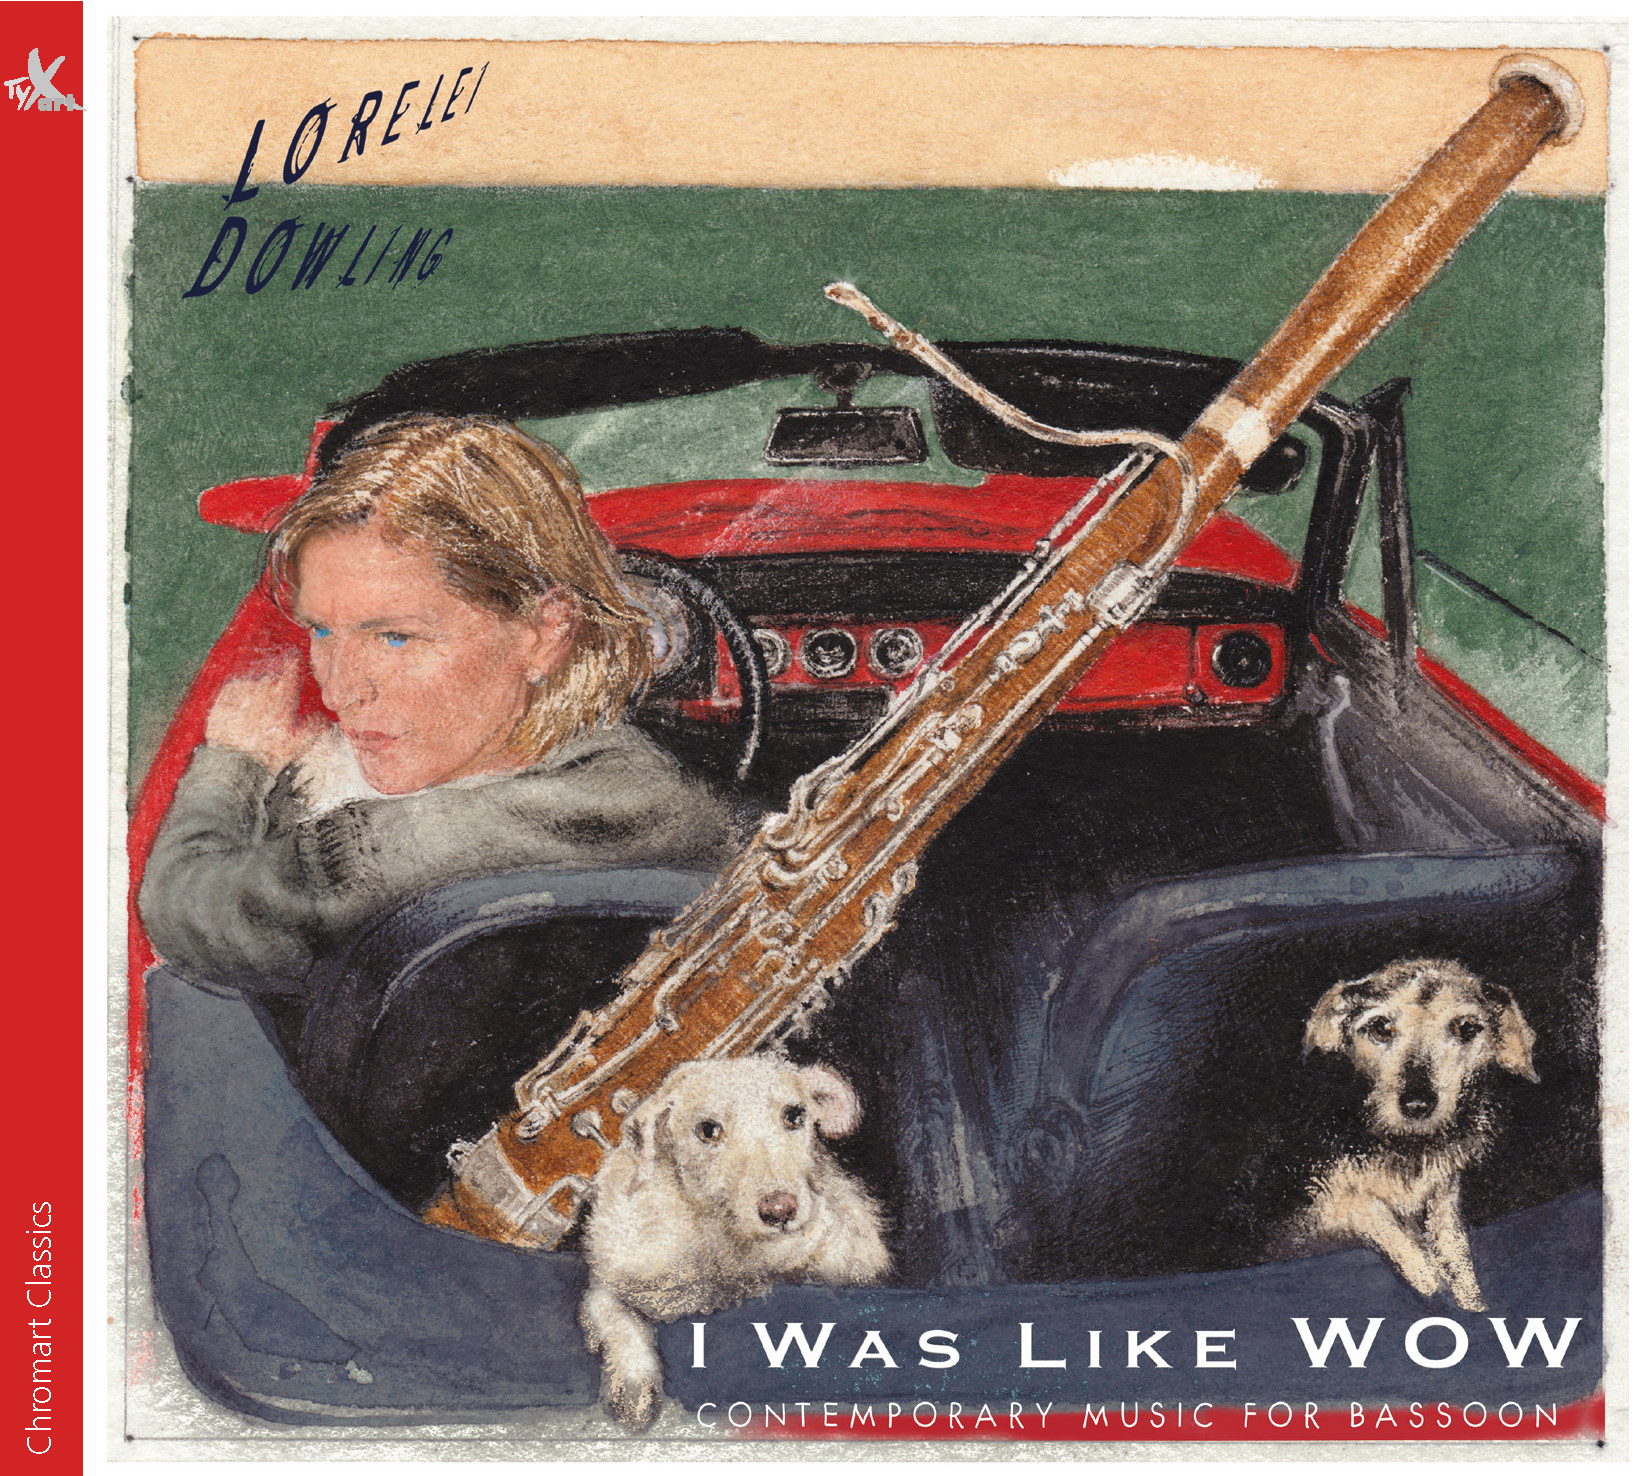 I was like WOW - Werke für Fagott, Lorelei Dowling & Ensembles